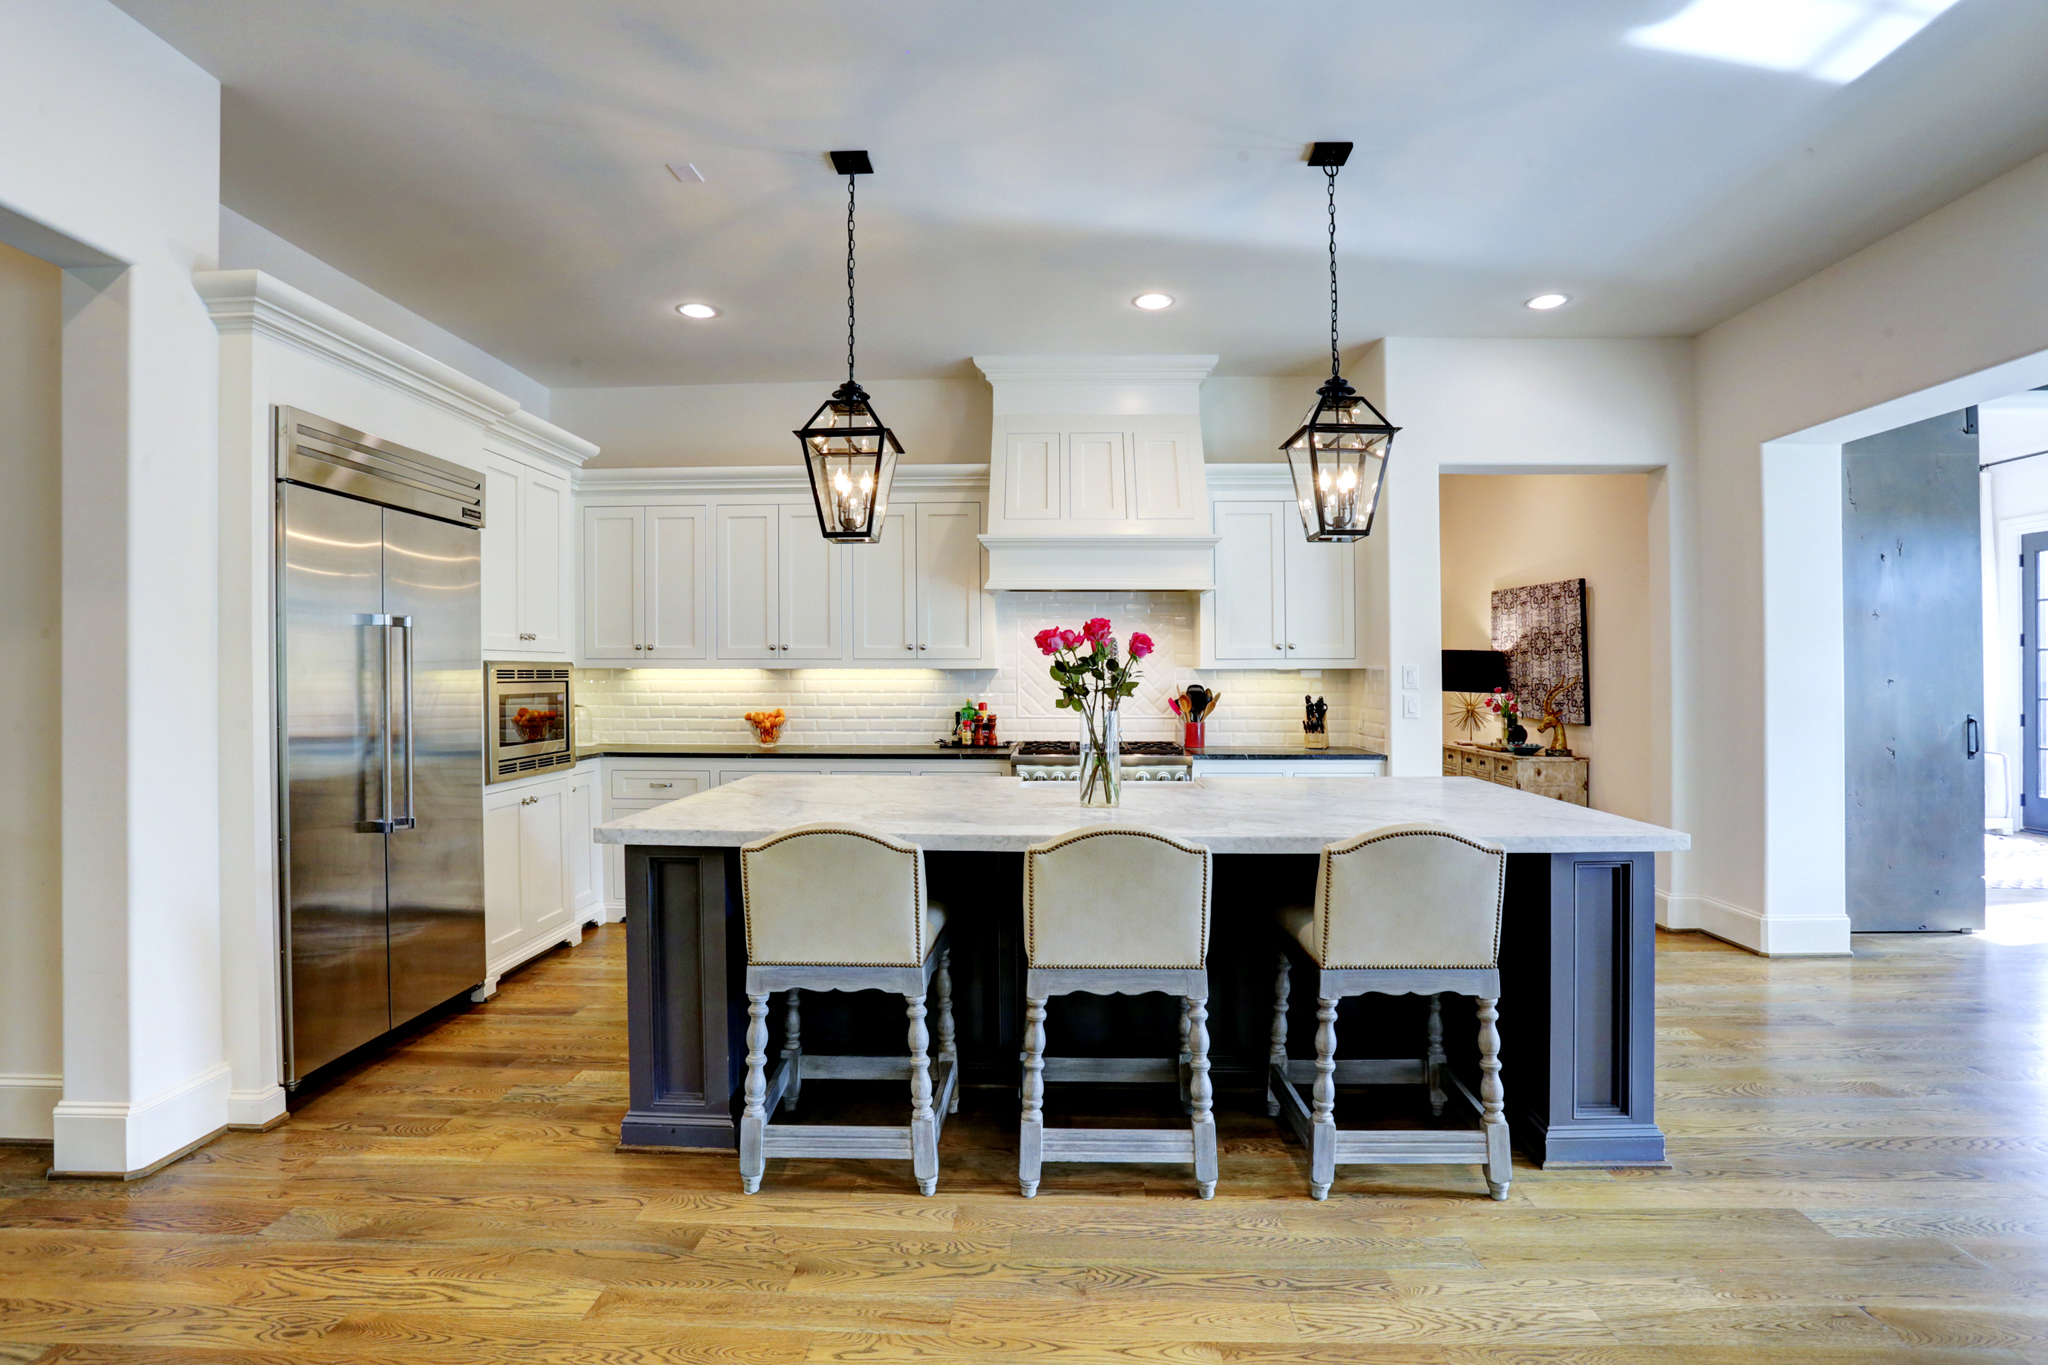 Transitional luxury home kitchen